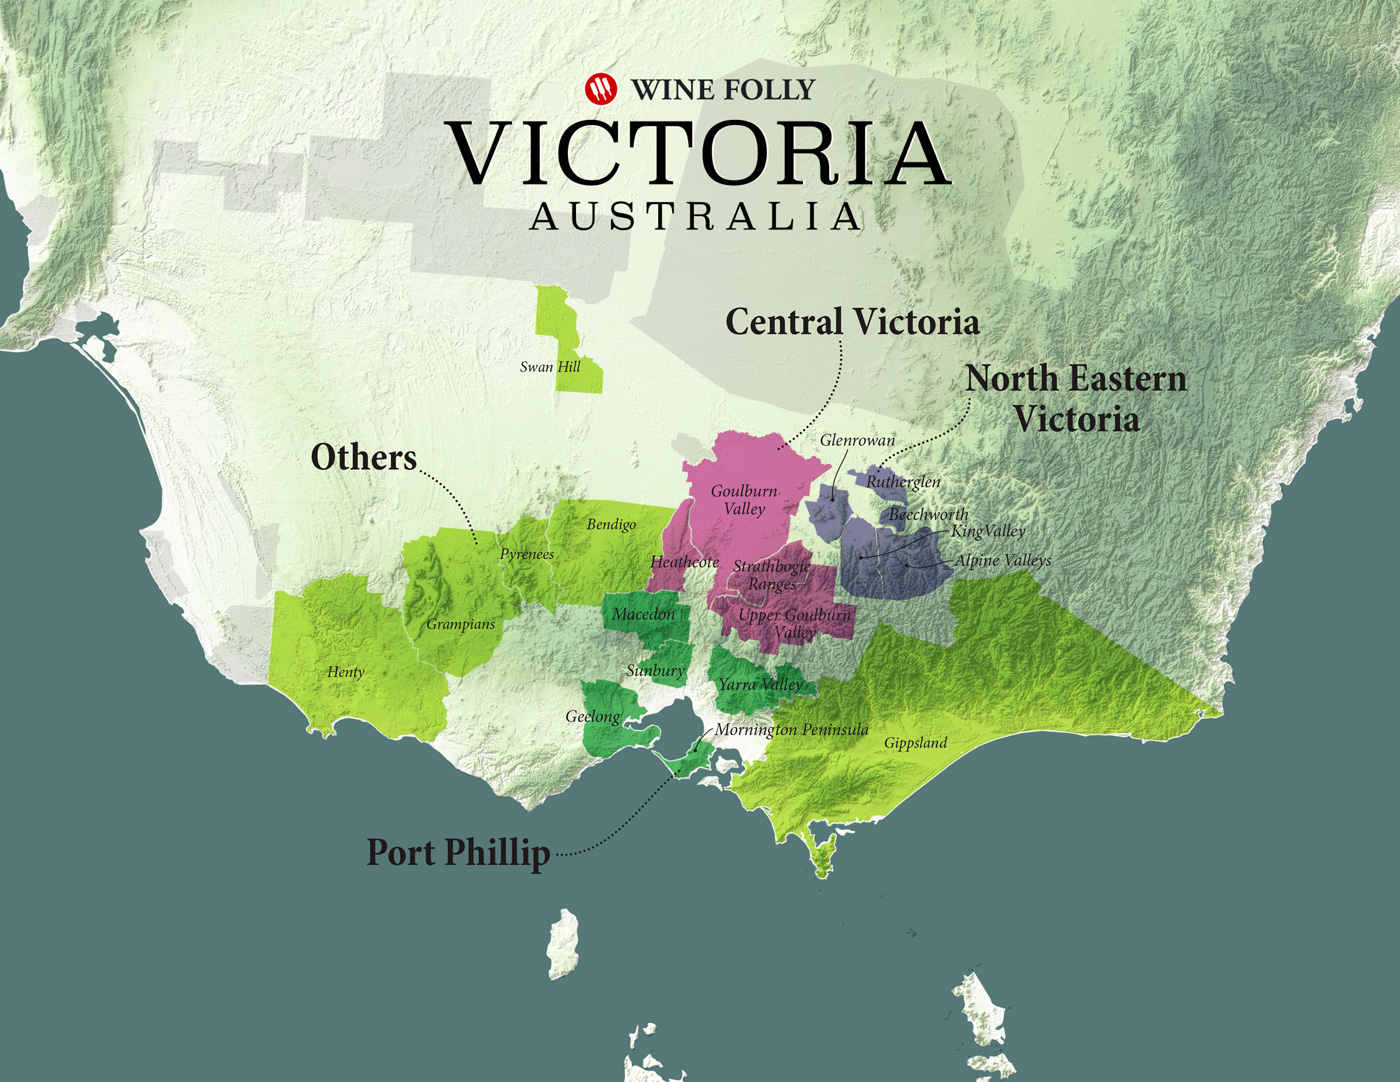 Victoria-Australia-WineMap-WineFolly